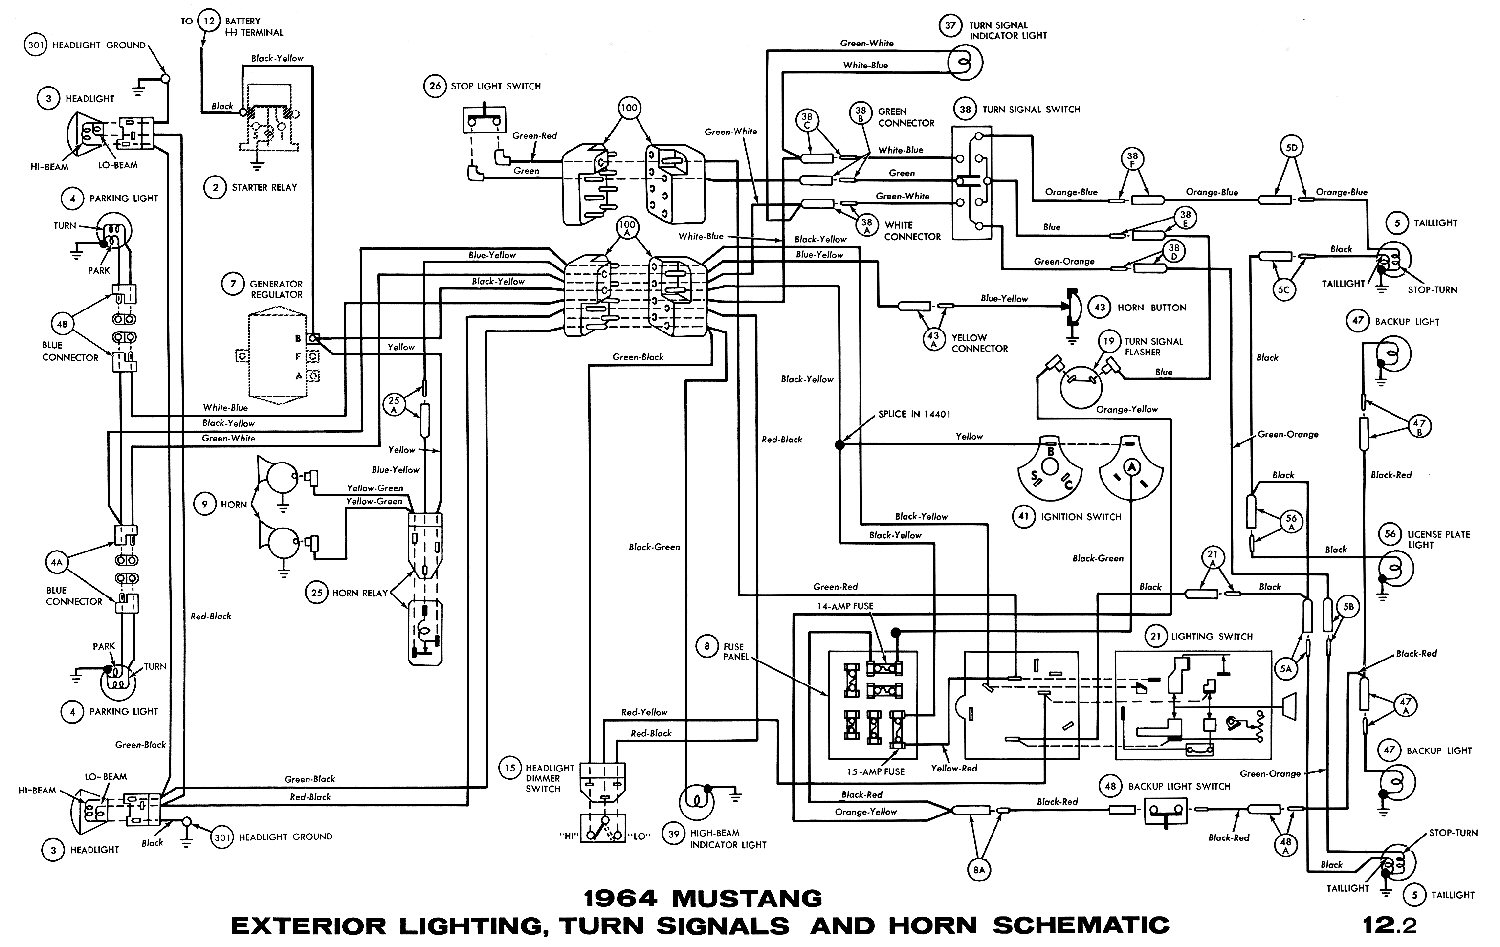 1964i 1964 mustang wiring diagrams average joe restoration 93 mustang turn signal wiring diagram at gsmportal.co